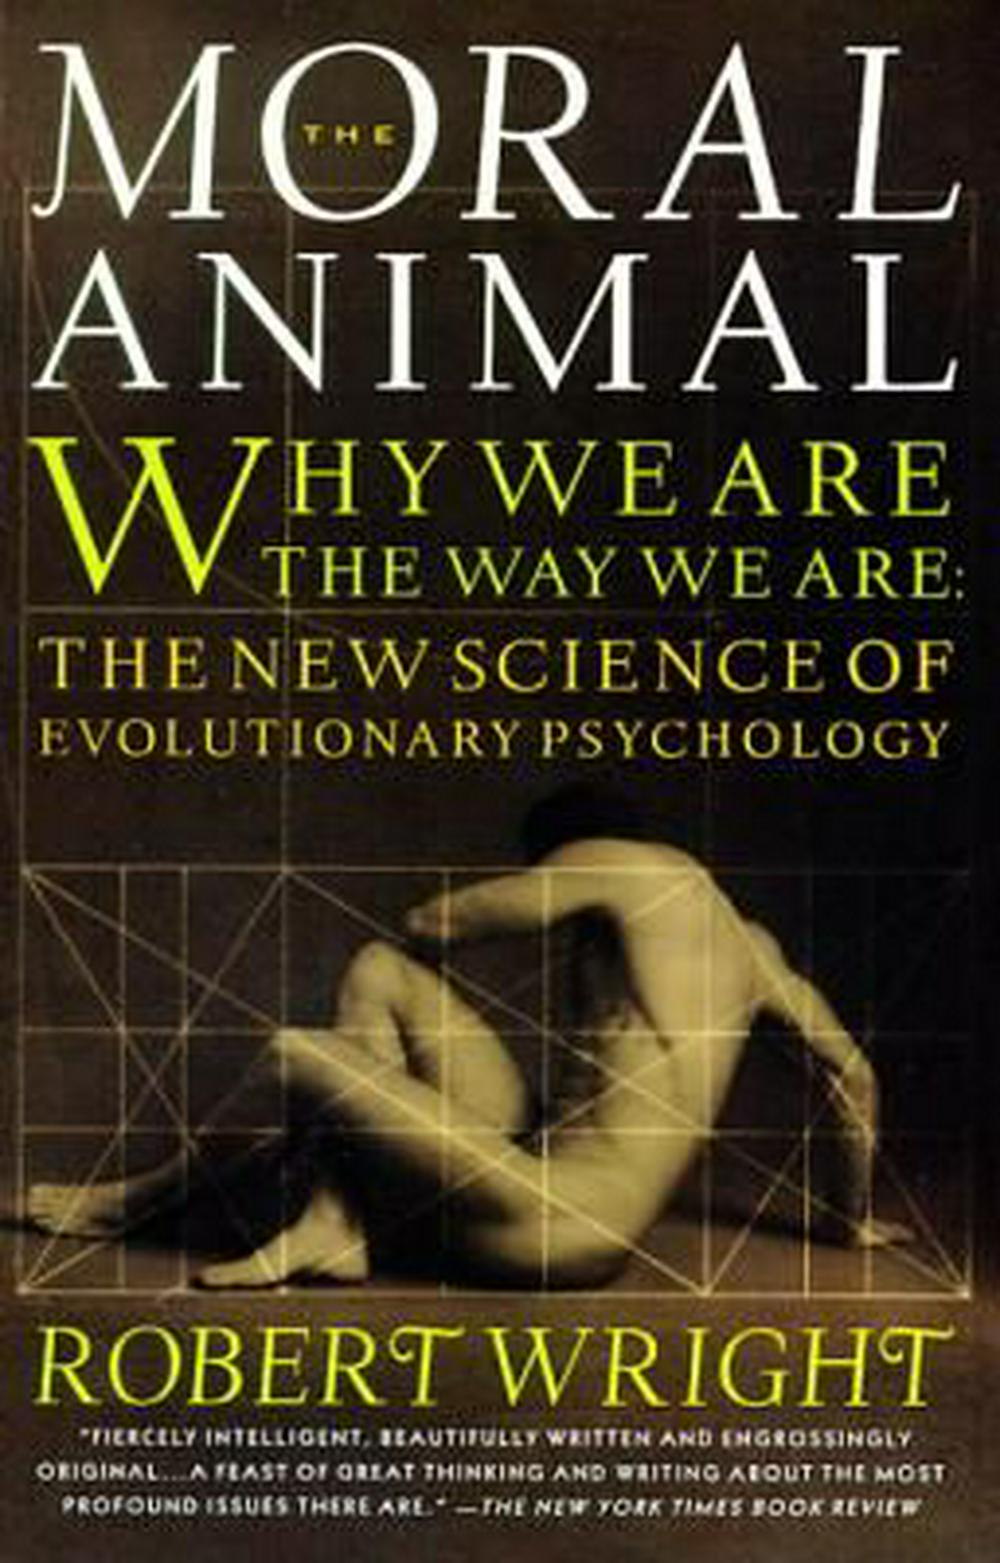 The Moral Animal by Robert Wright, ISBN: 9780679763994